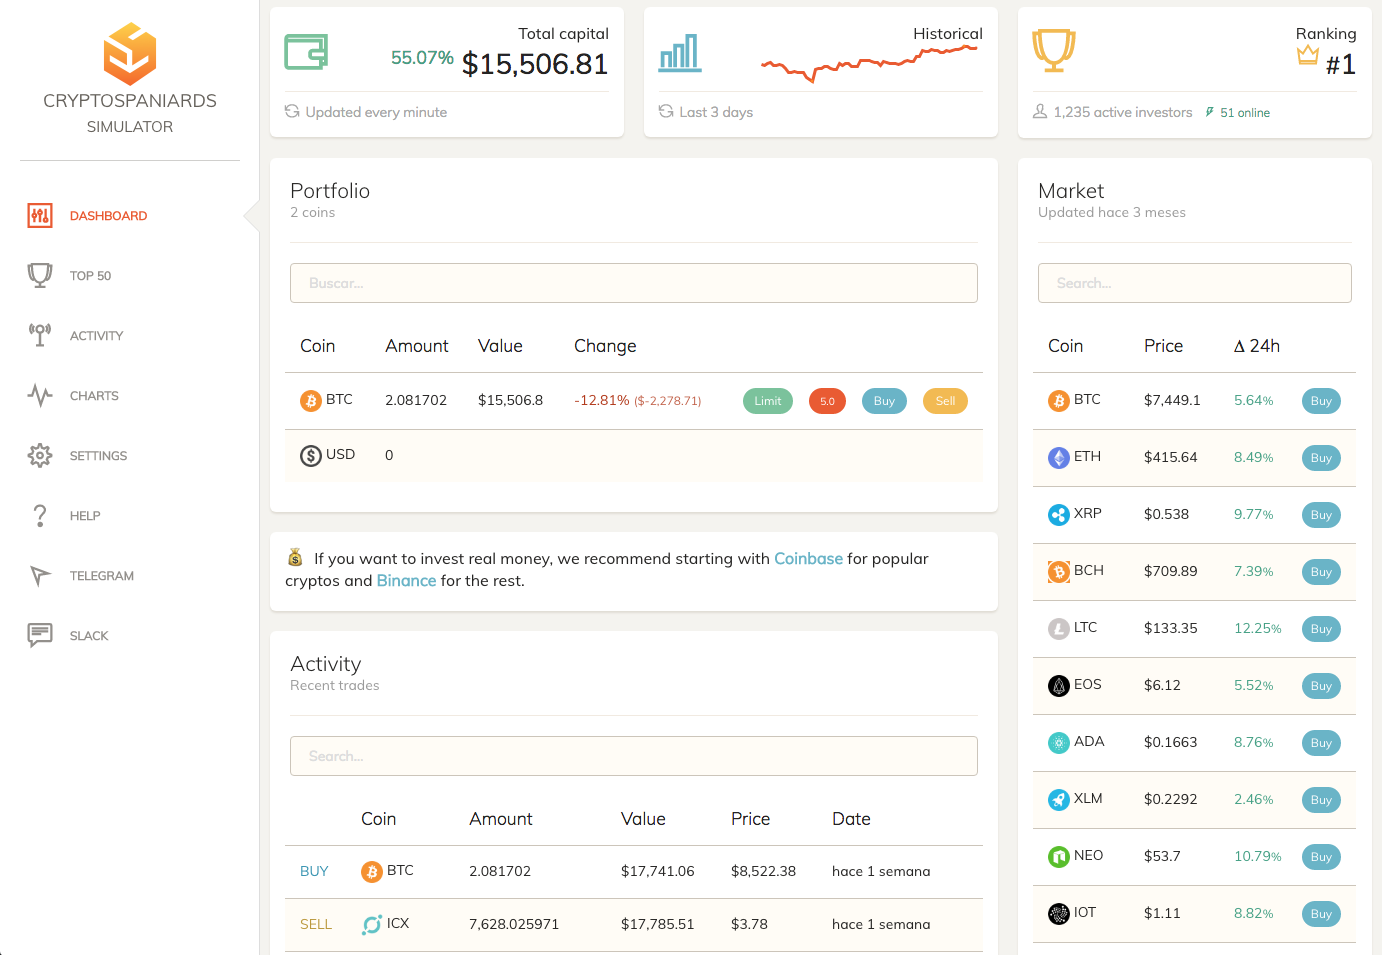 Simple and Easy to use Dashboard